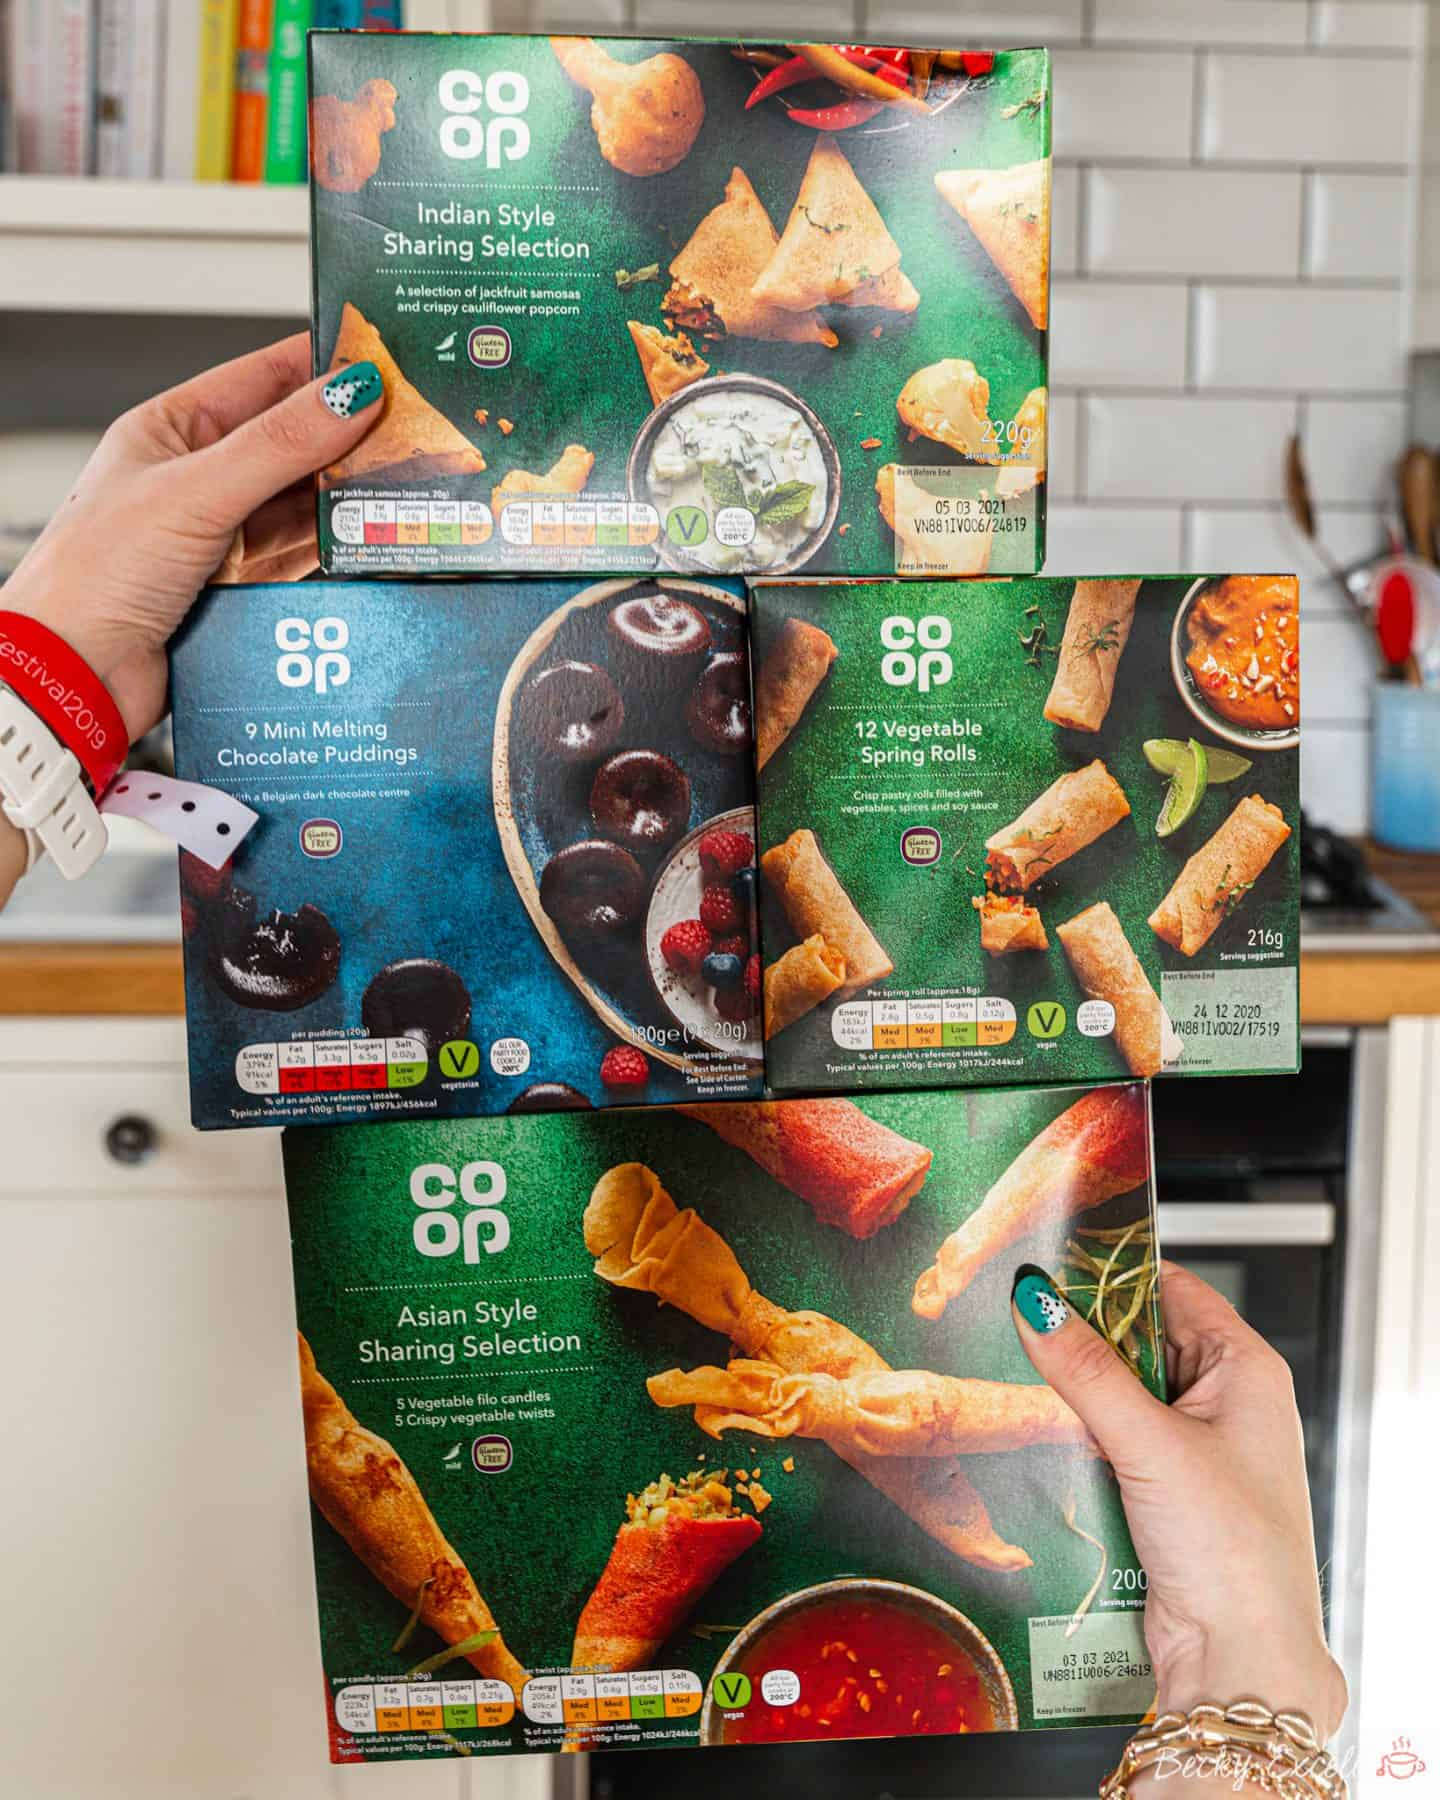 17 NEW products in the Co-op gluten free Christmas range 2019